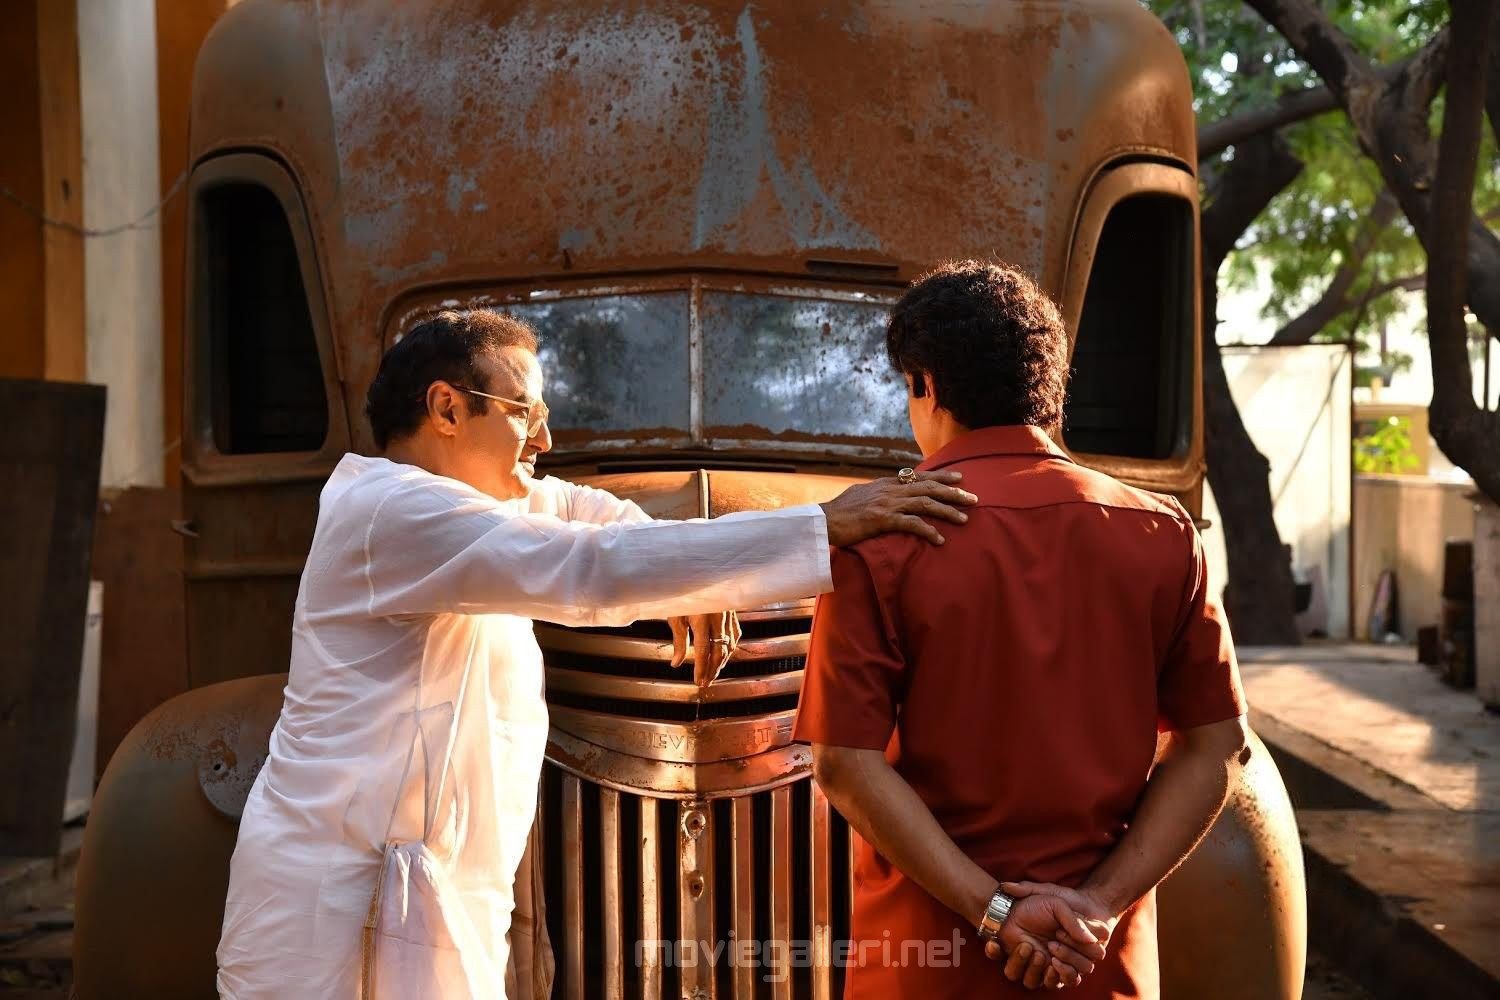 Nandamuri Balakrishna & Kalyan Ram as Hari Krishna in NTR Biopic Movie HD Image